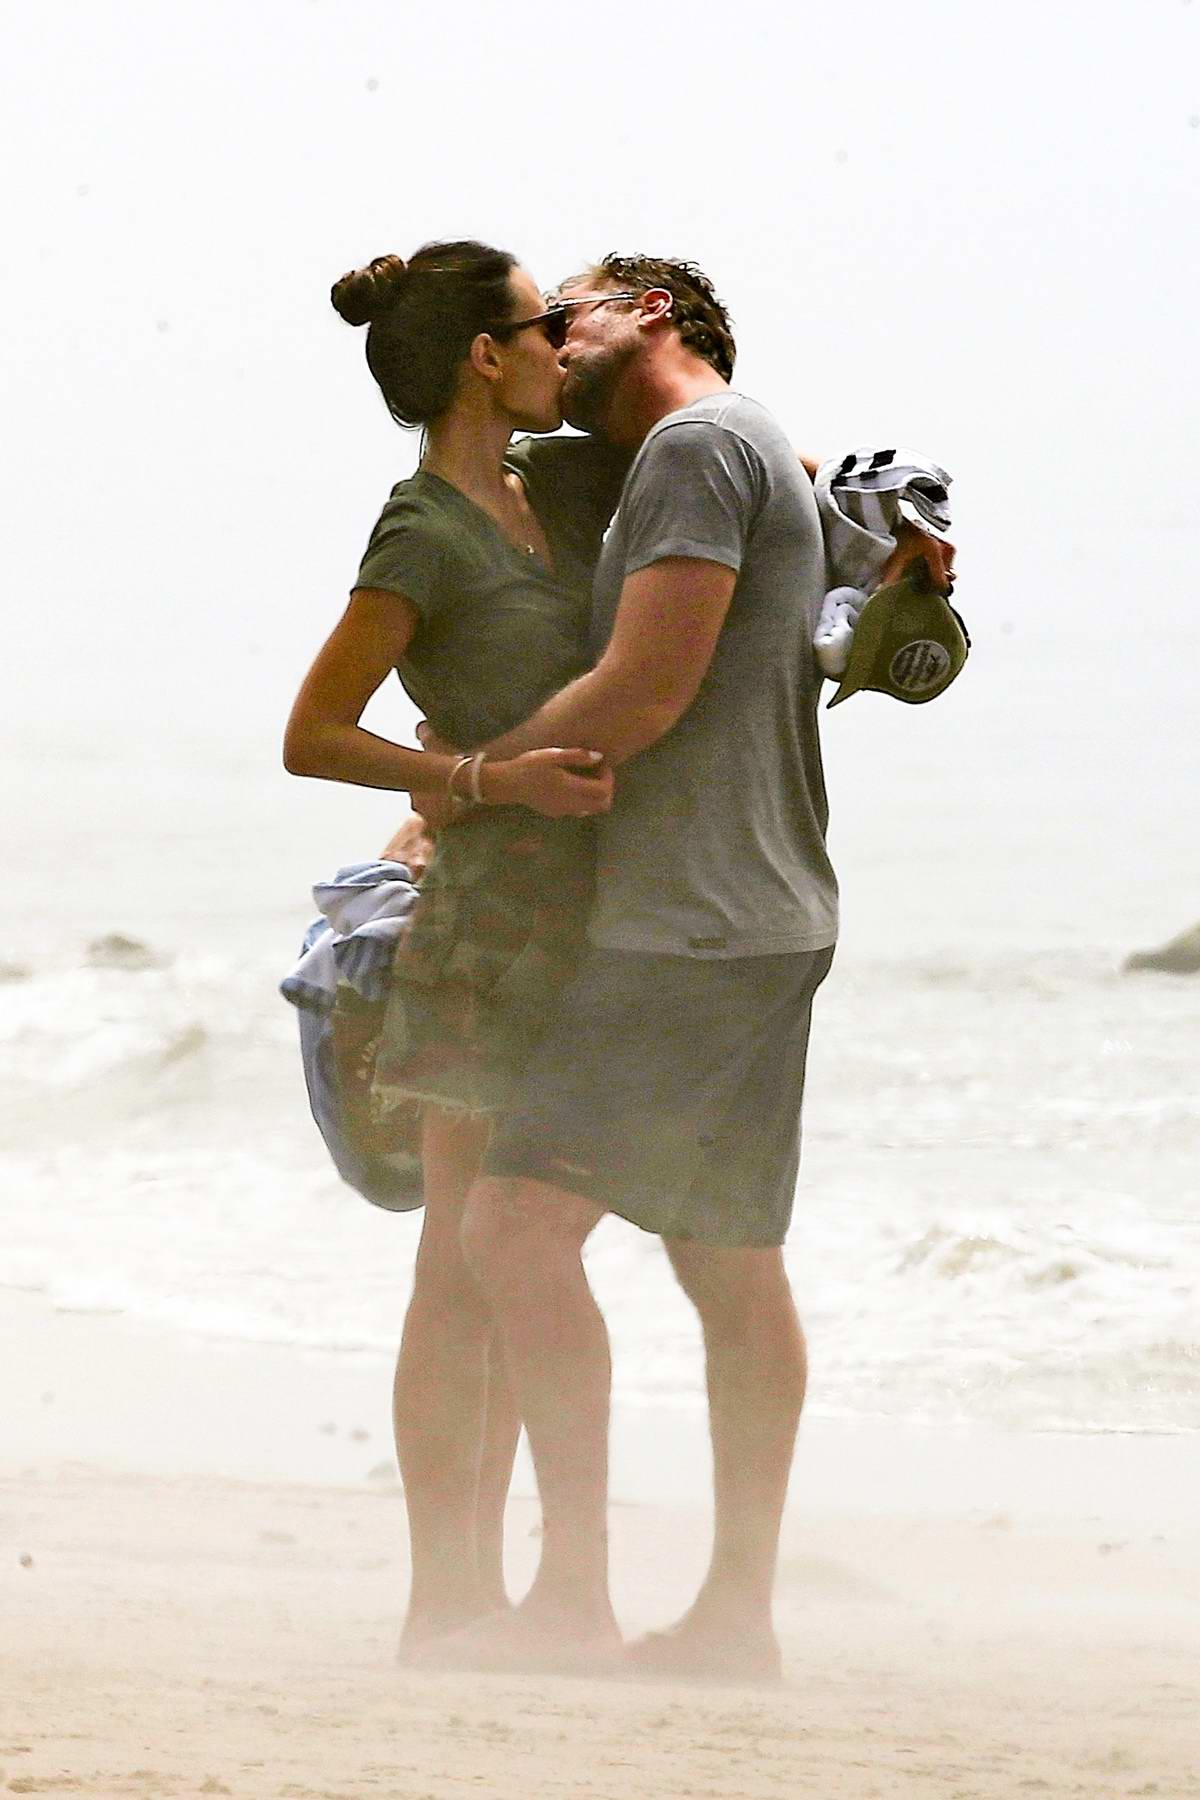 Jordana Brewster packs on some serious PDA with her new boyfriend during a romantic beach walk in Malibu, California